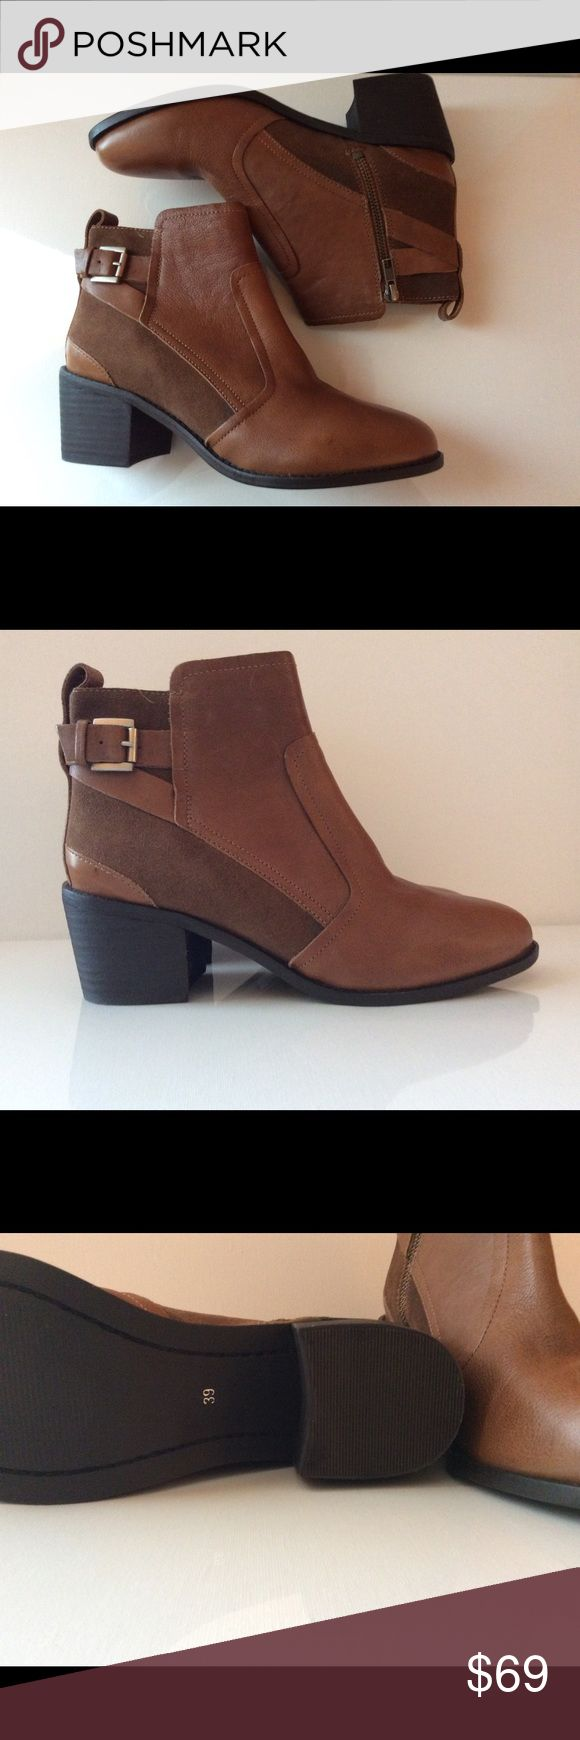 H&M boots New. No tags but still have the shoe bag. Genuine leather. Size 39/8. H&M Shoes Ankle Boots & Booties